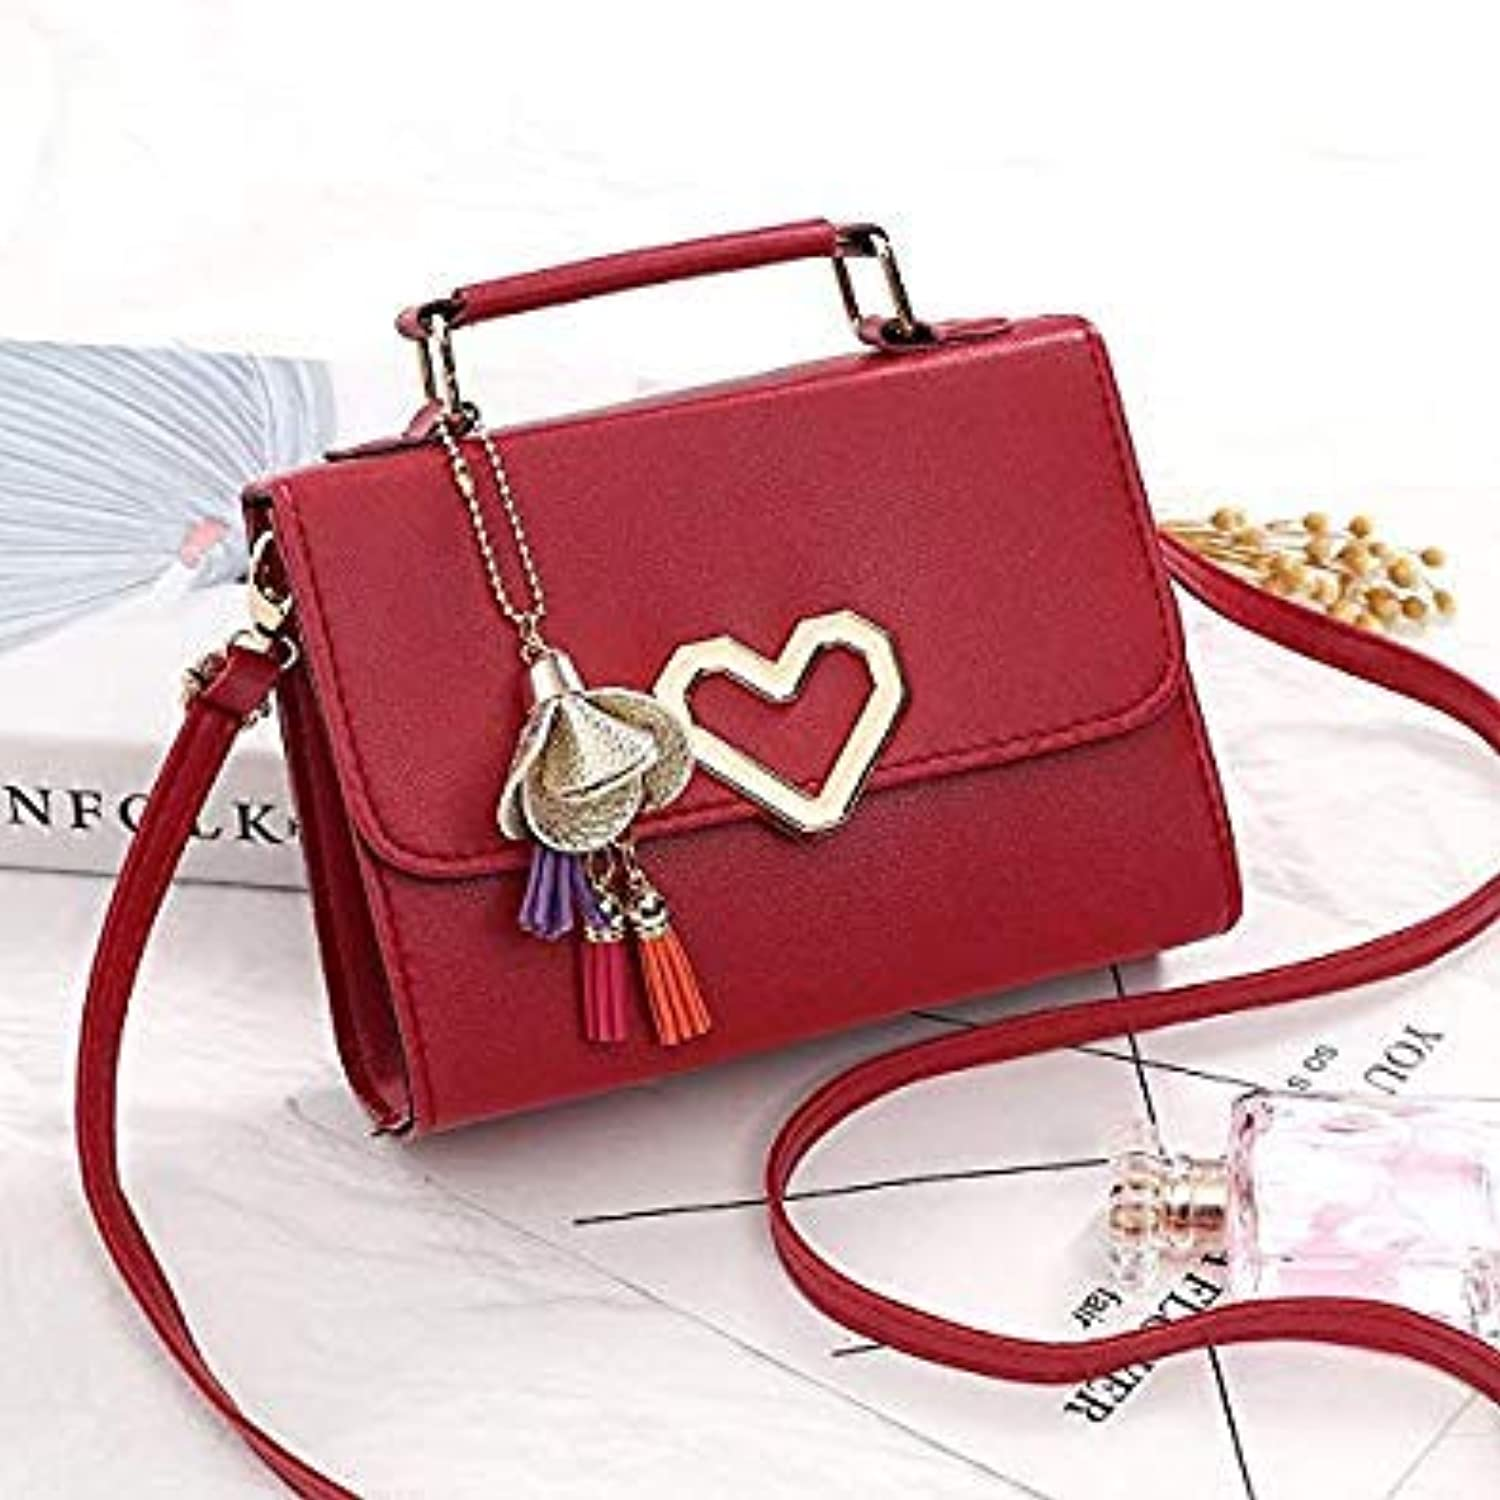 Bloomerang Women Handbags Bags Famous Brands PU Leather Flap Tassel Fashion Solid Party Messenger Crossbody Bag for Women color Red